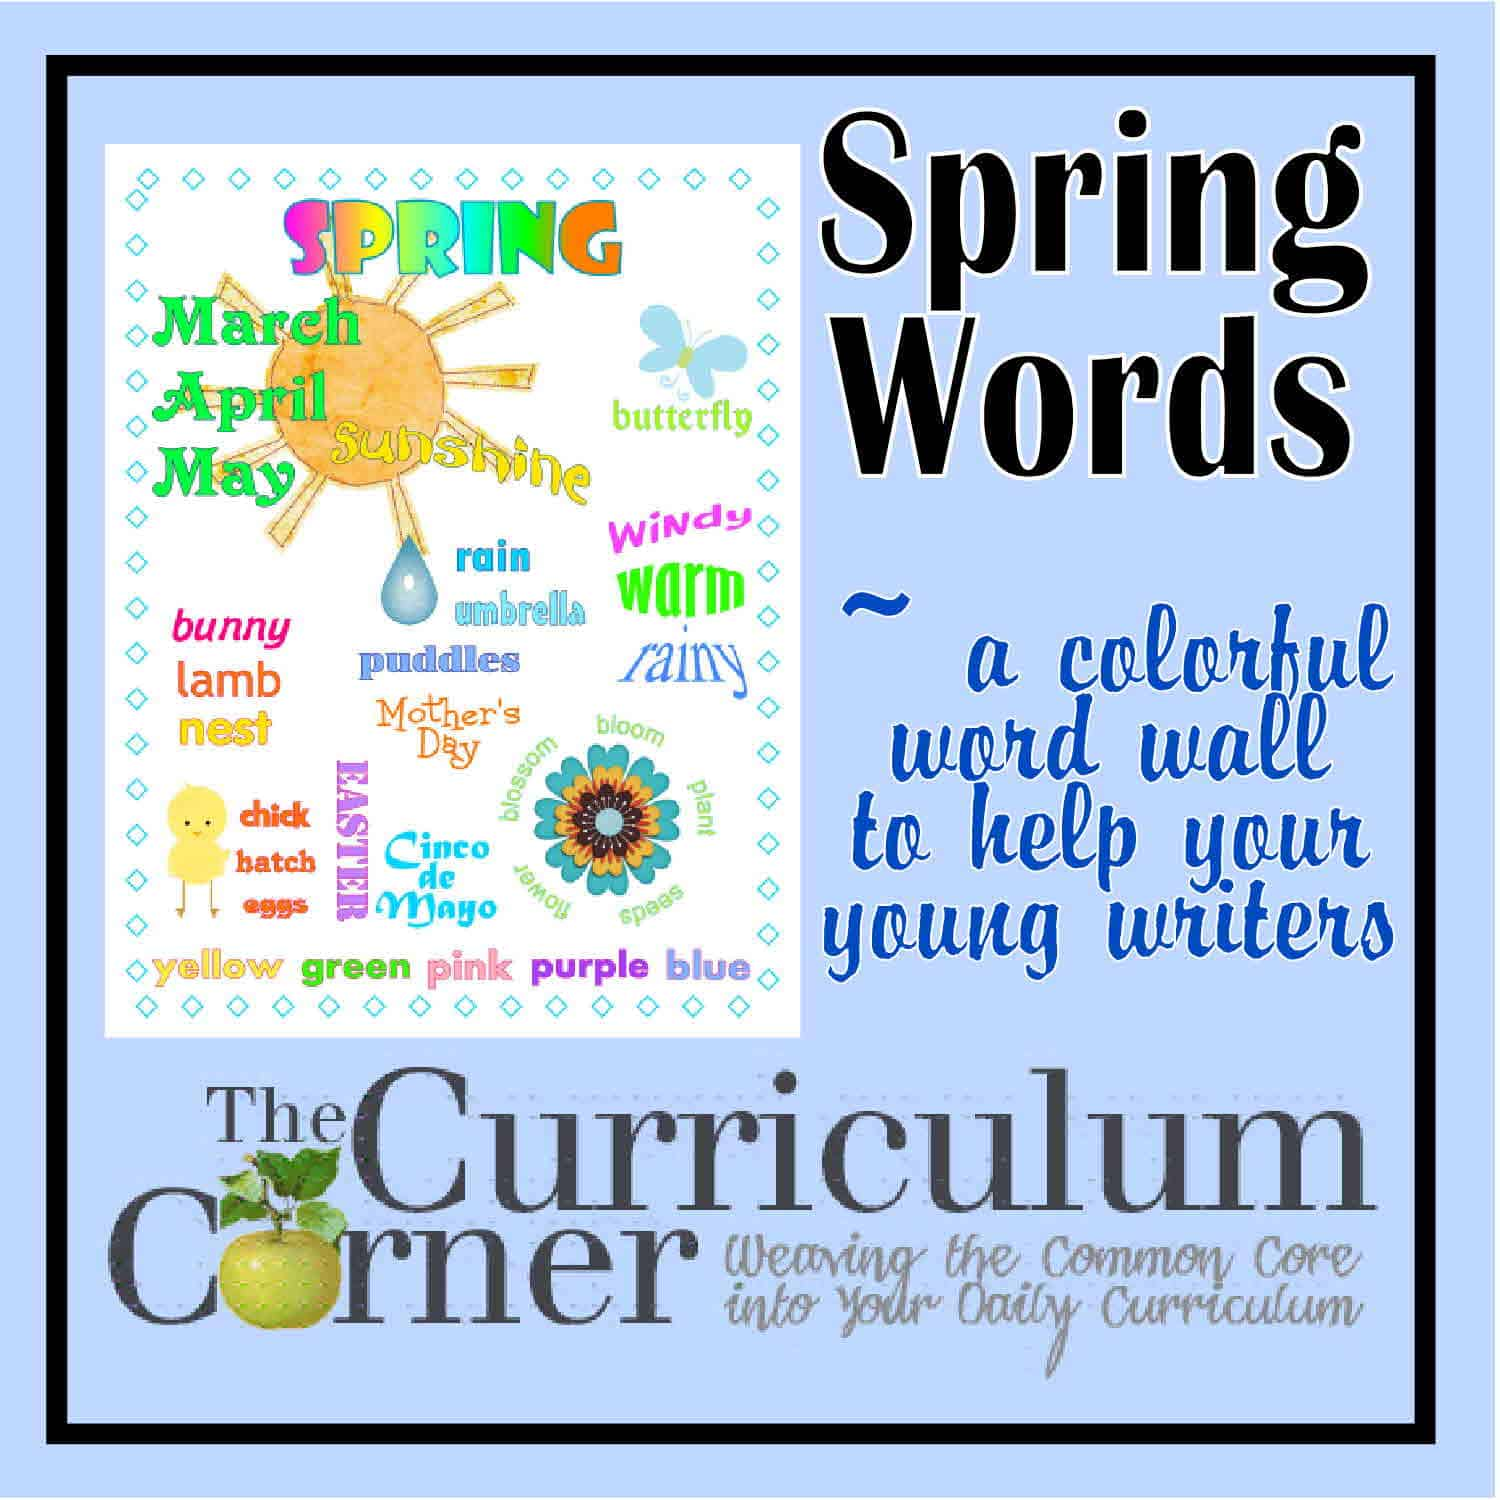 Spring Words Word Wall